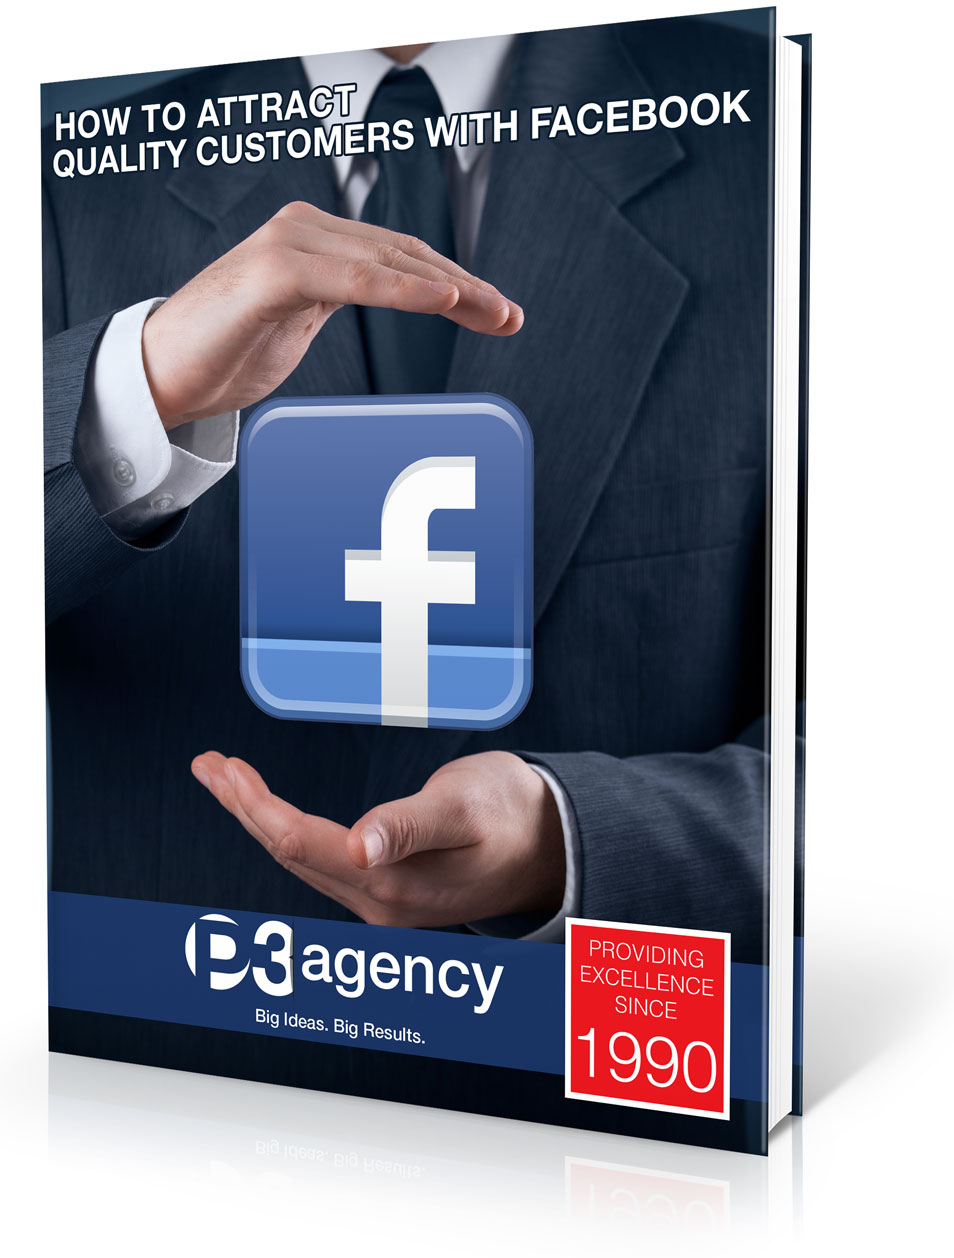 How to Attract Quality Customers with Facebook